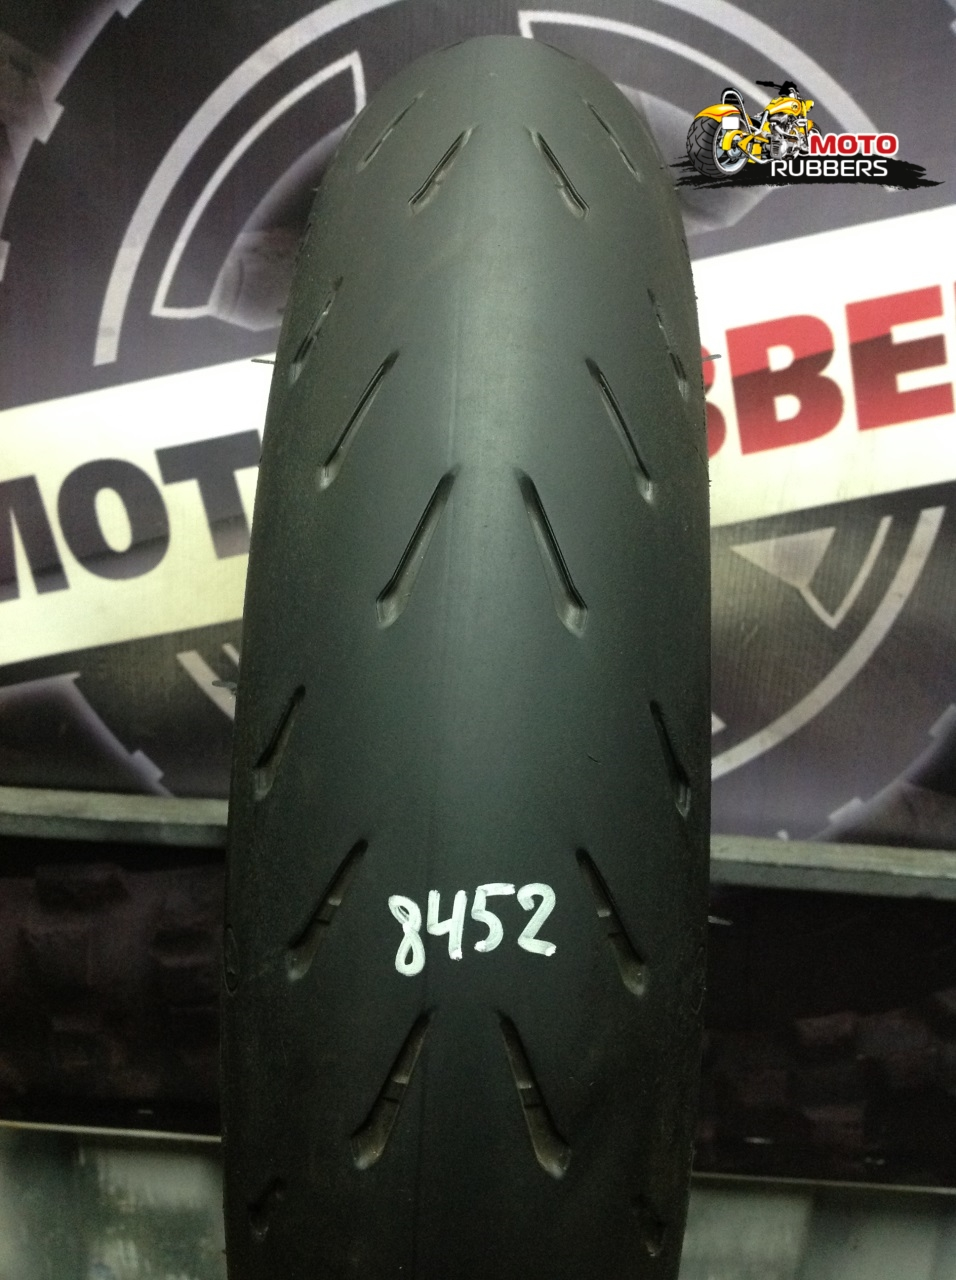 120/70 R17 Michelin power rs